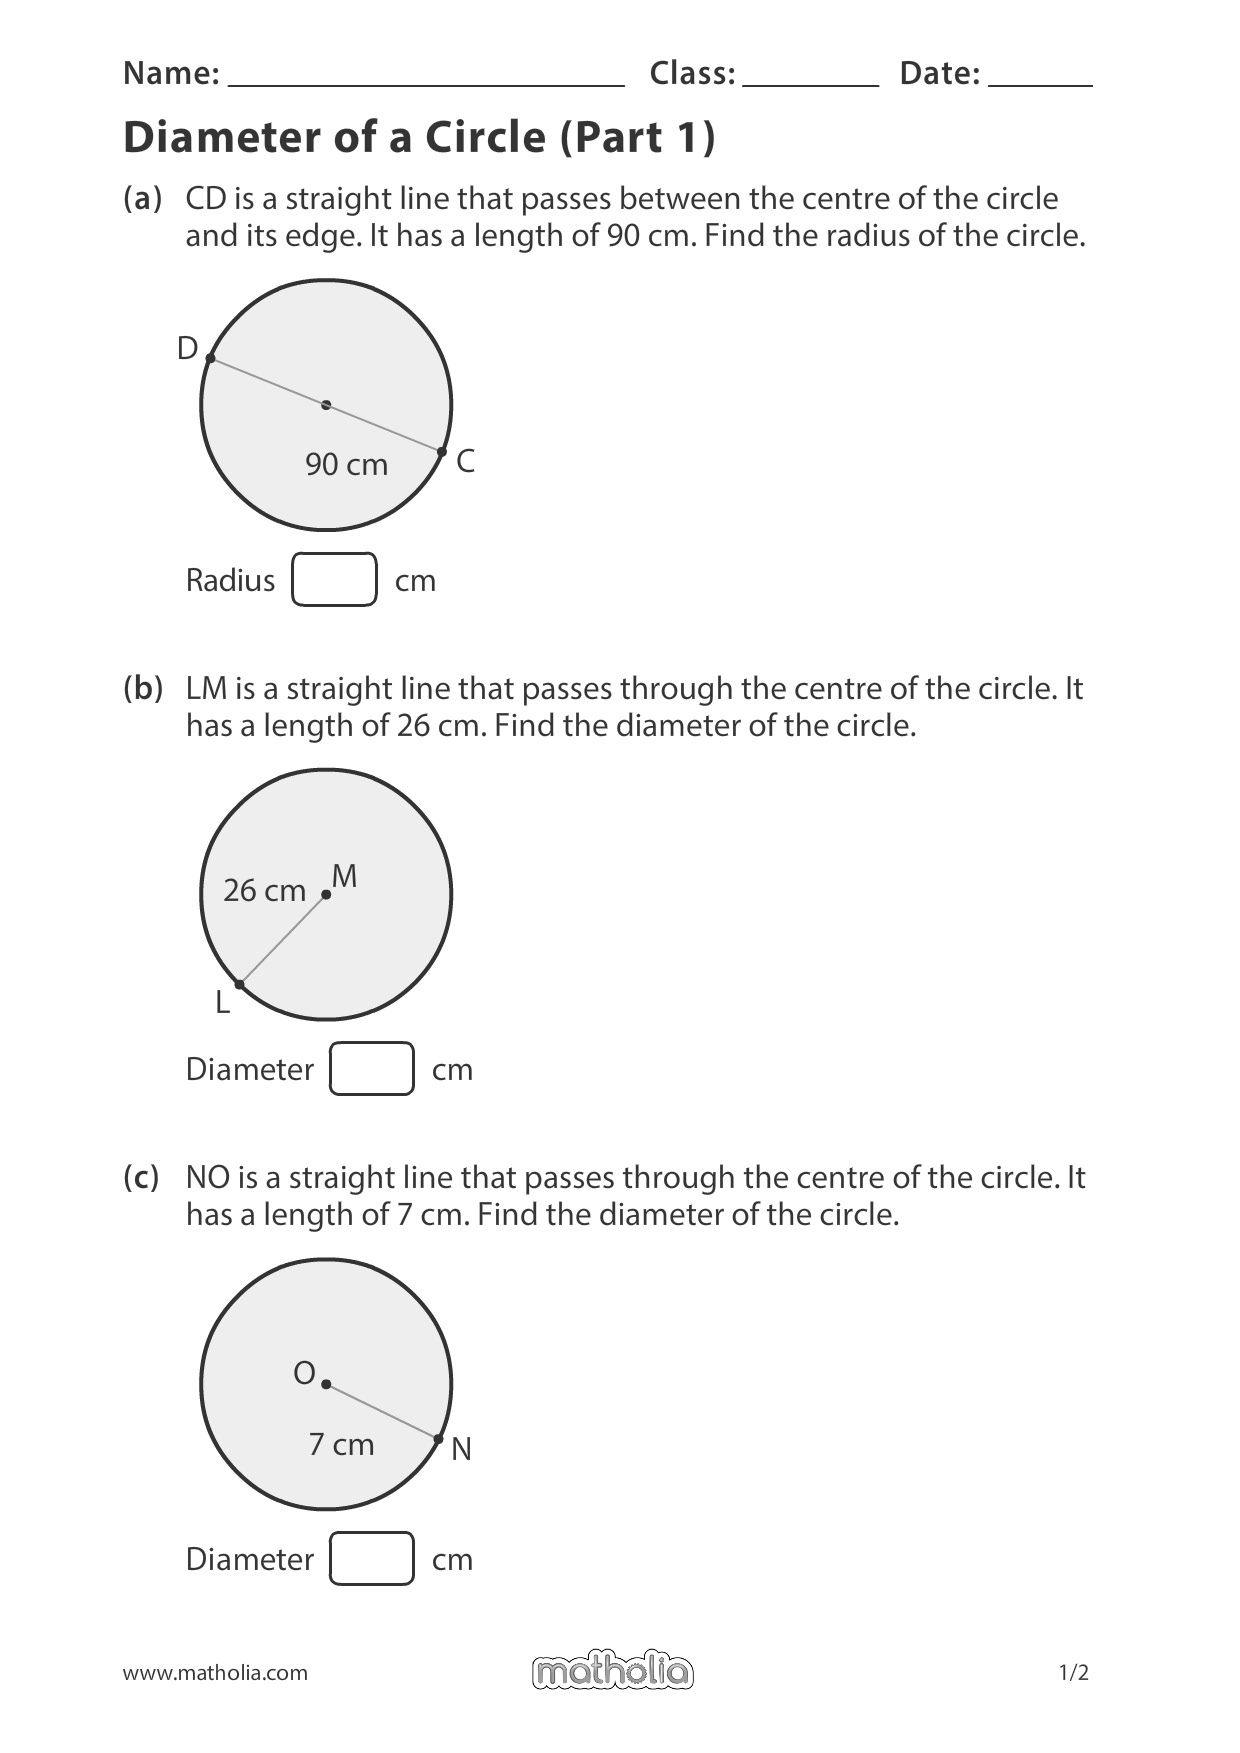 Diameter Of A Circle Part 1 In